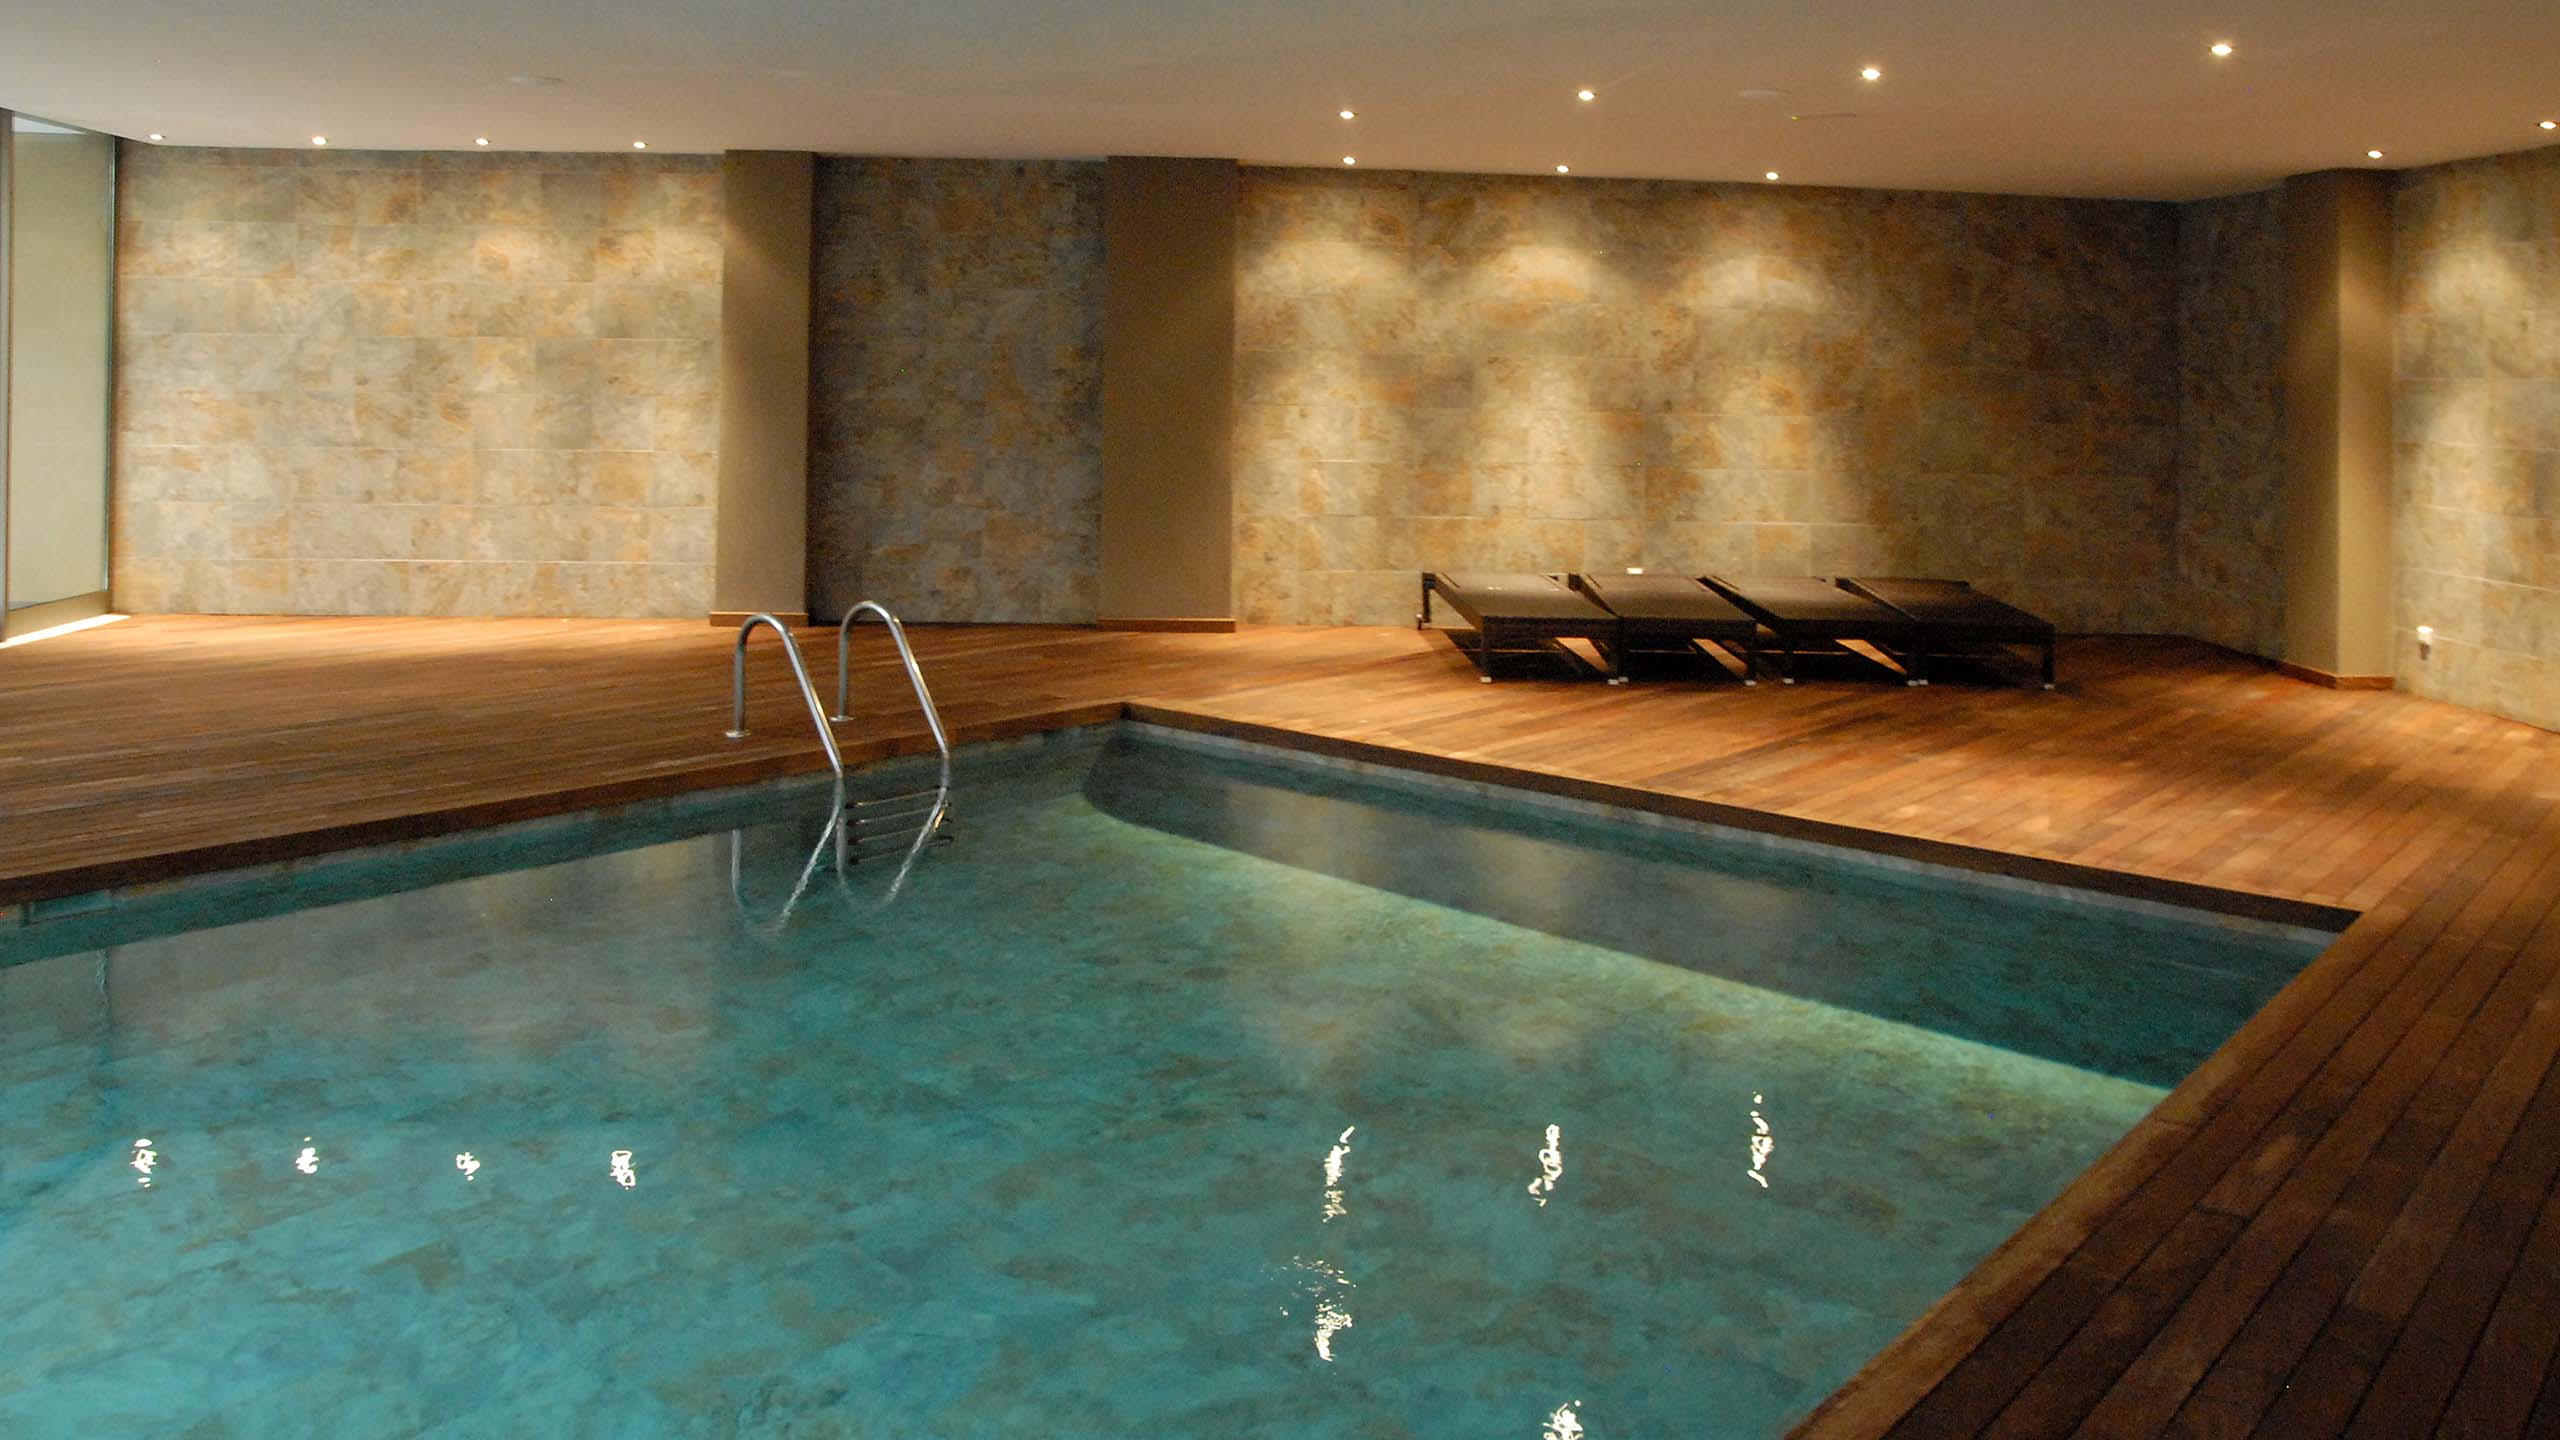 Opinions reviews about the Protur Biomar Gran Hotel Spa